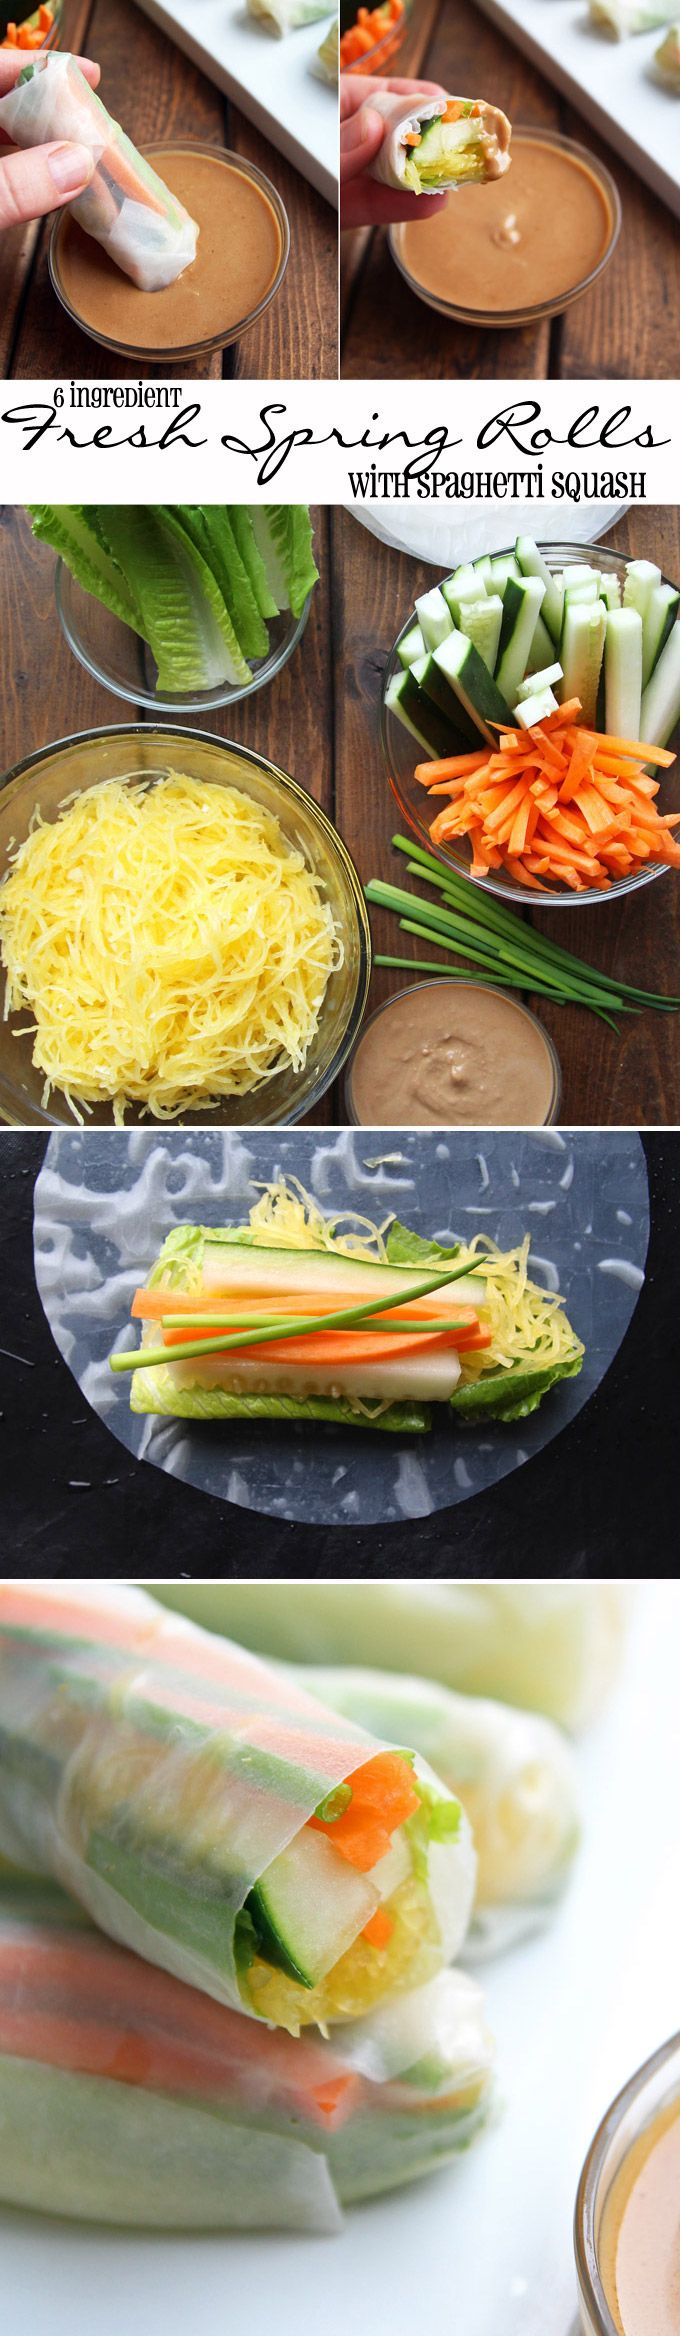 6-Ingredient Fresh Spring Rolls with Spaghetti Squash #glutenfree #vegetarian #vegan